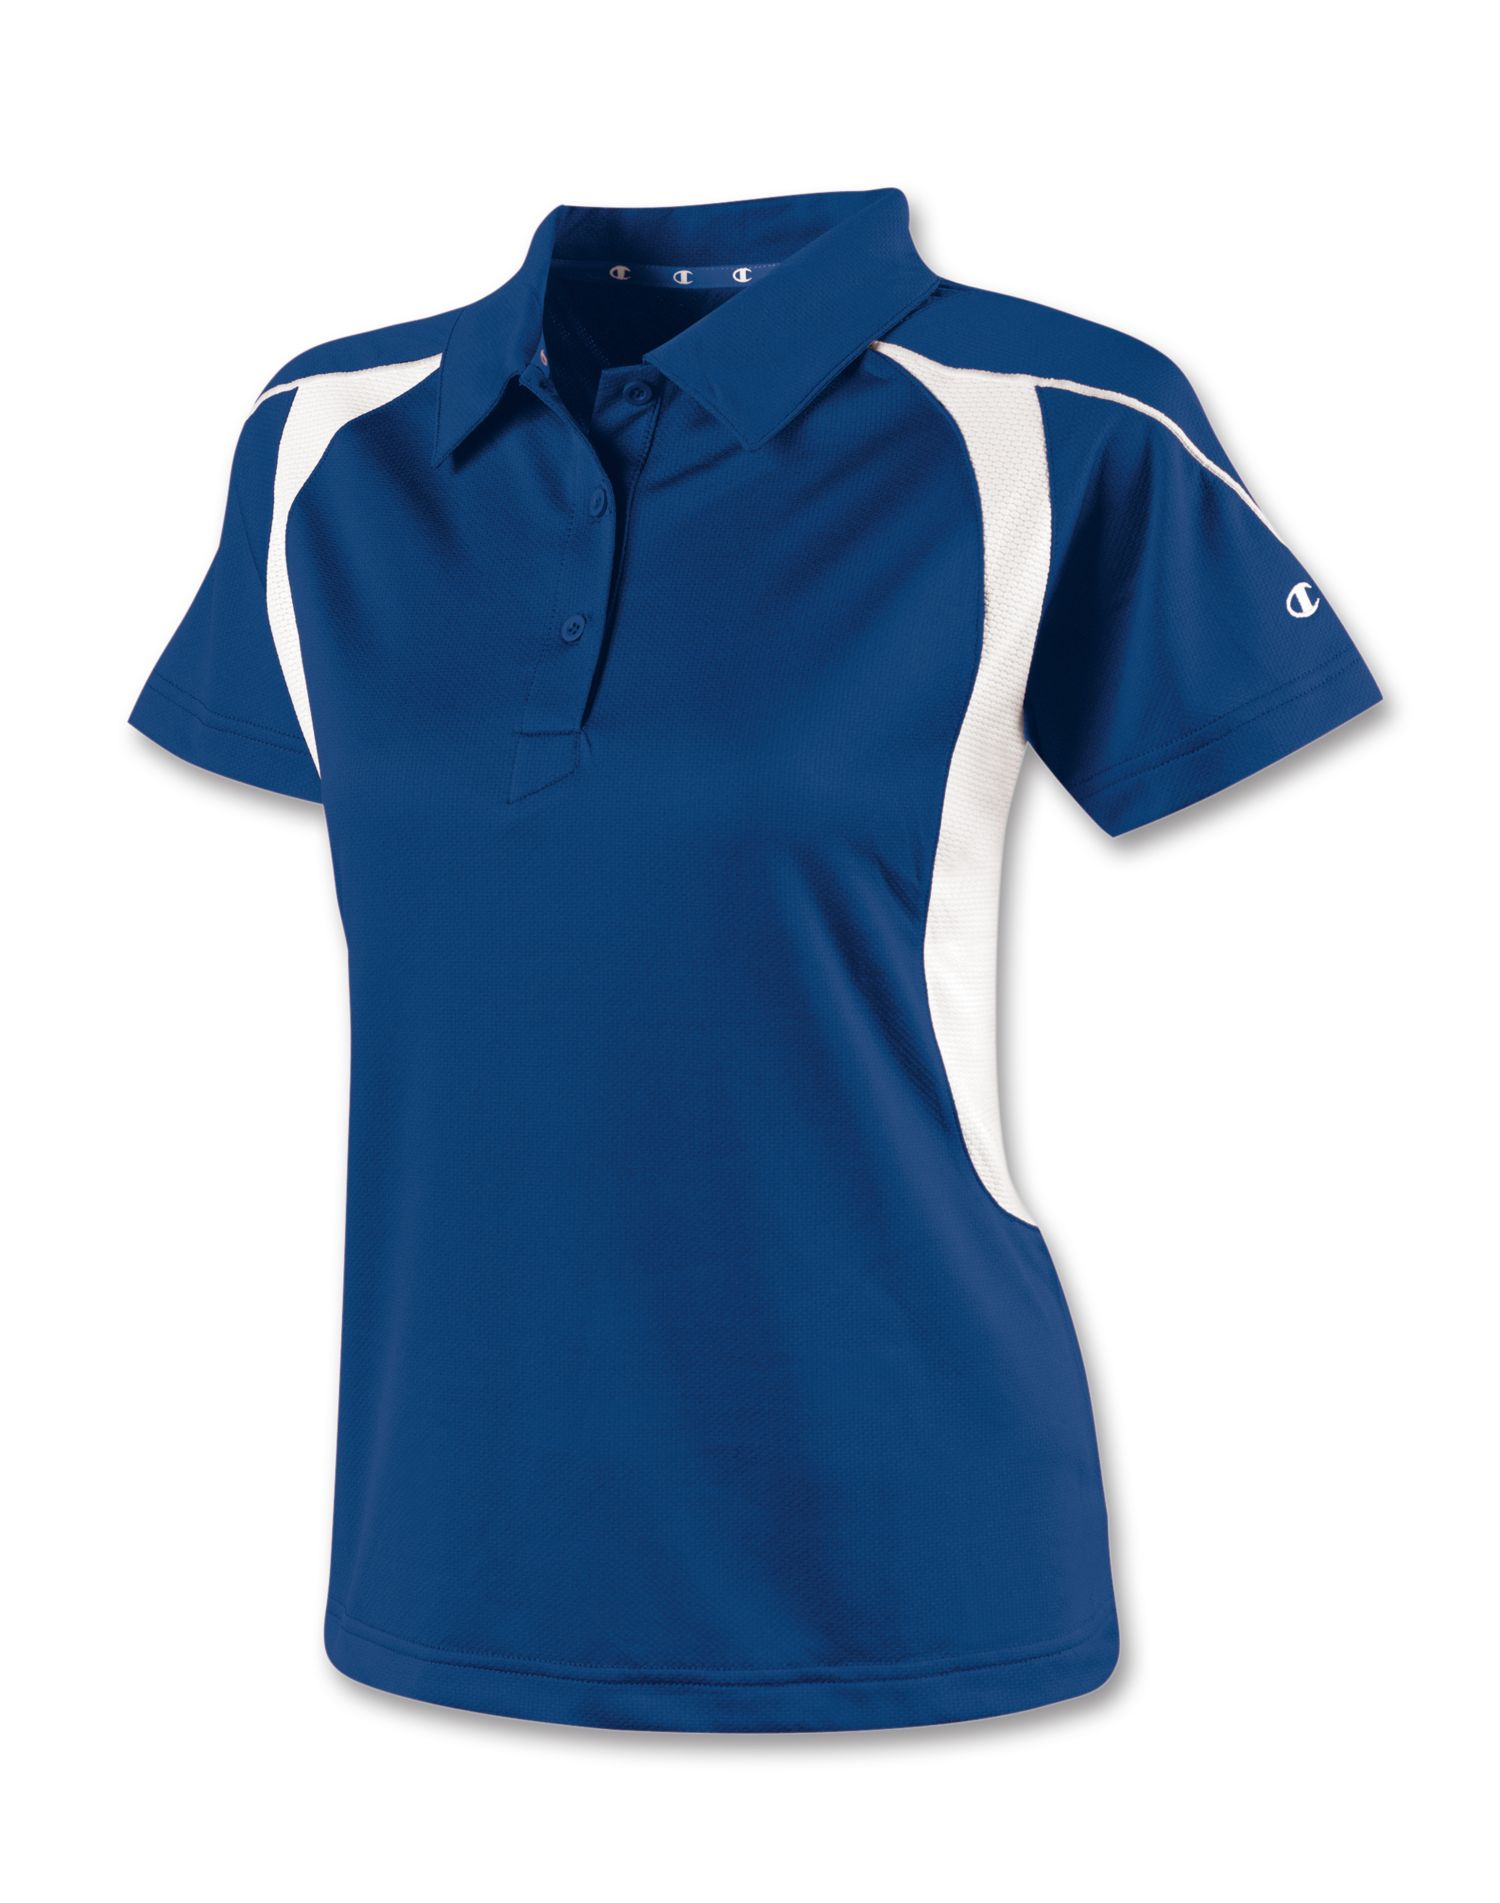 champion women's t shirts 7819 - Champion Double Dry Training V ...